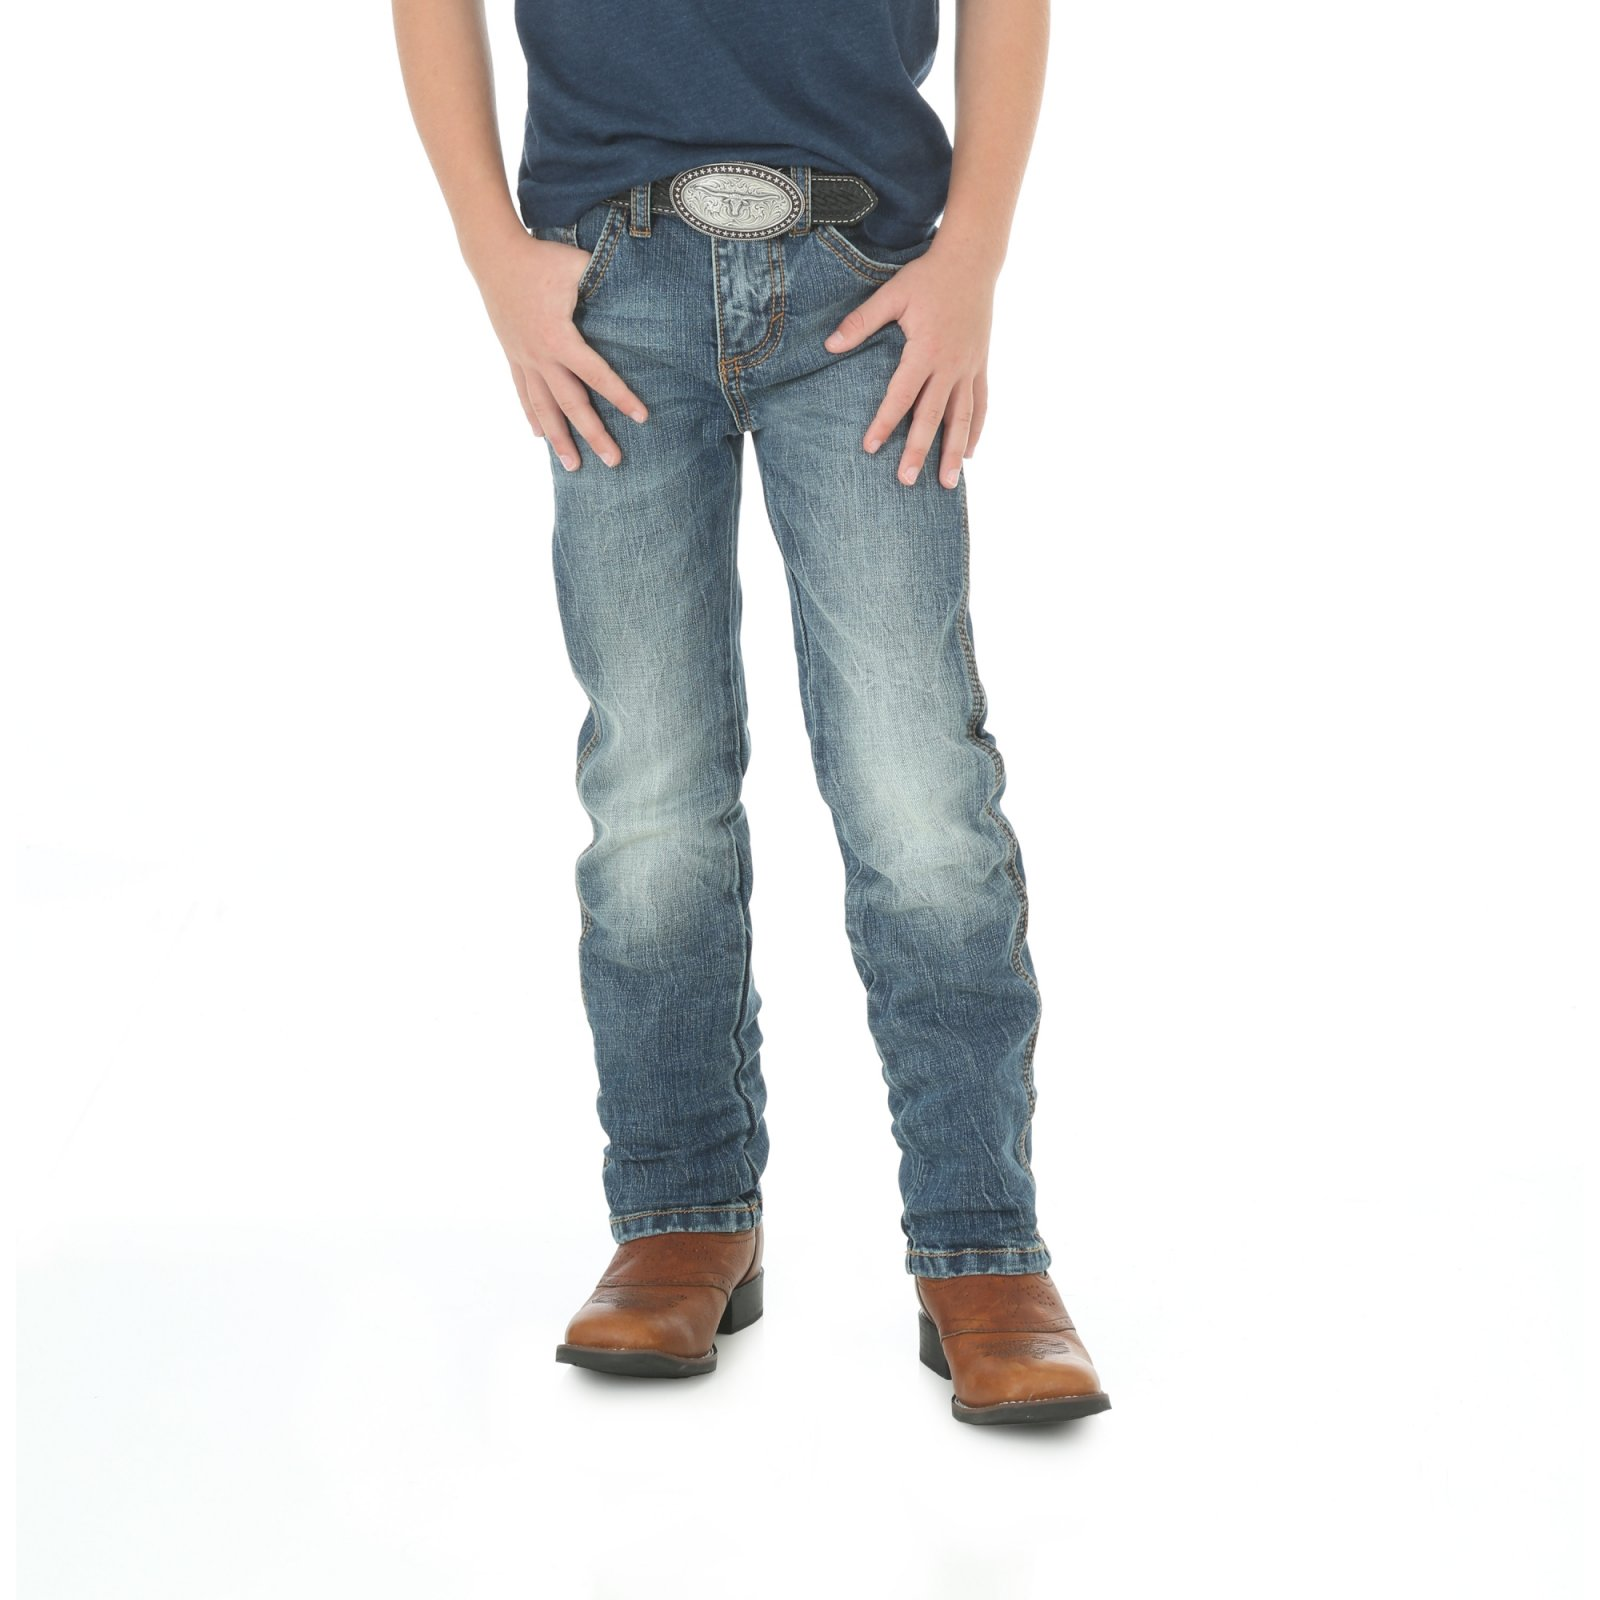 Retro Slim Straight from Wrangler -Regular Fit